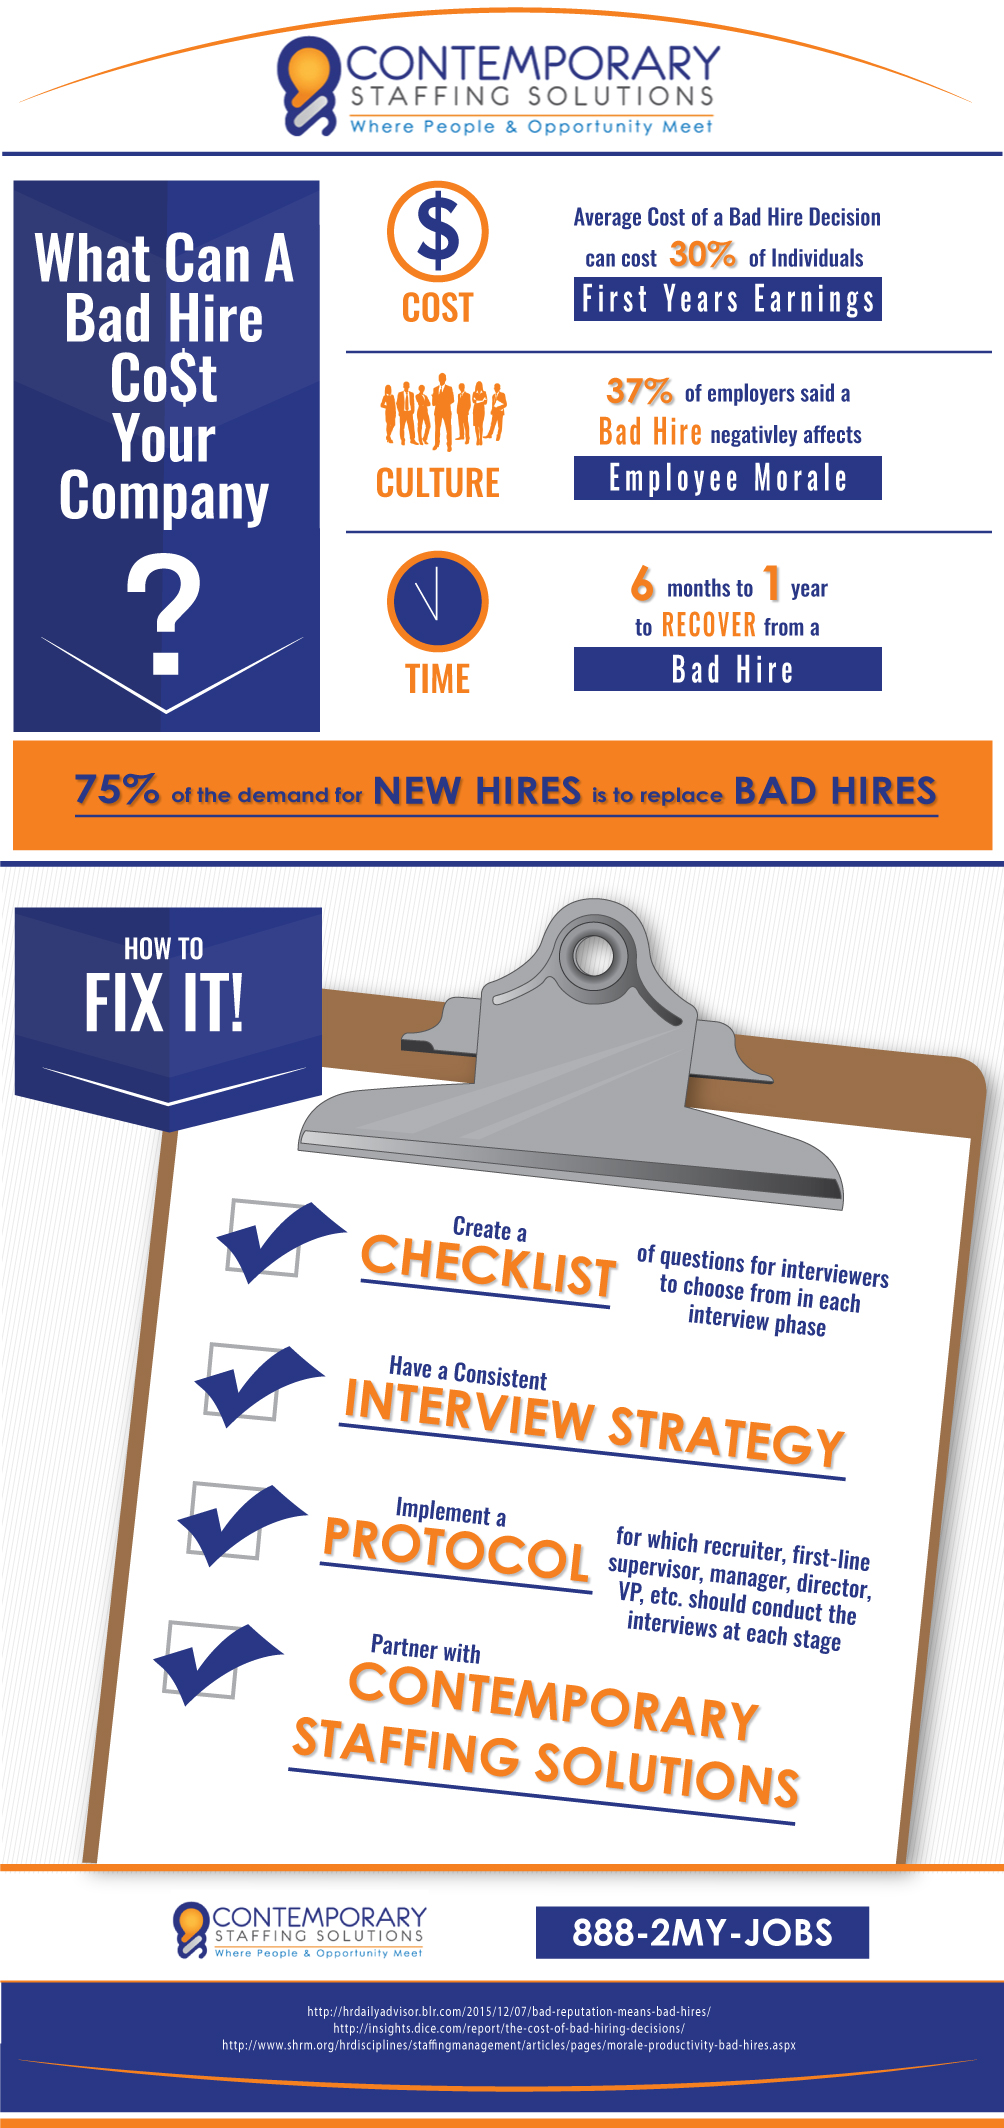 What Can a Bad Hire Cost Your Company? infographic